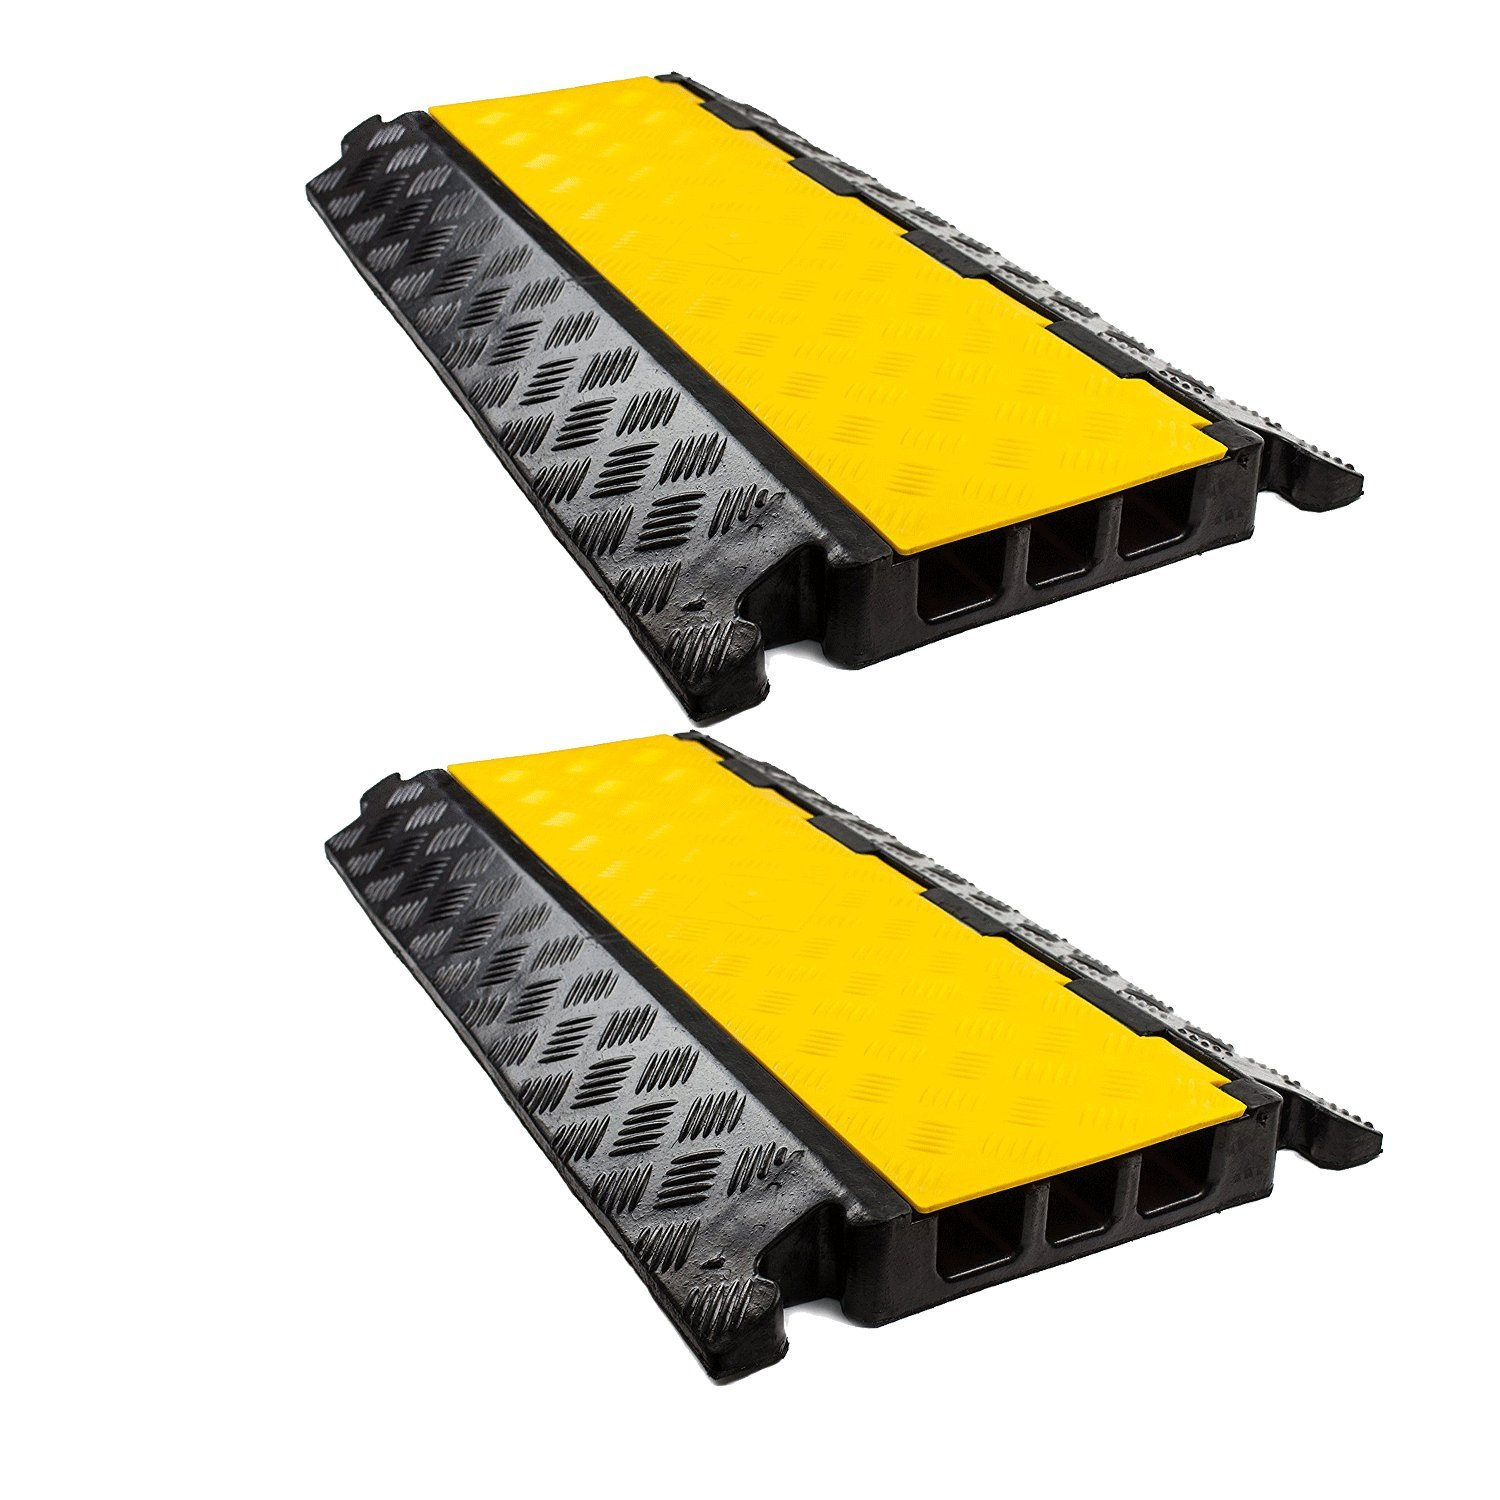 RK RK-CP-3C 3 Channel Modular Rubber Cable Protector Ramp (Straight, Qty:2)